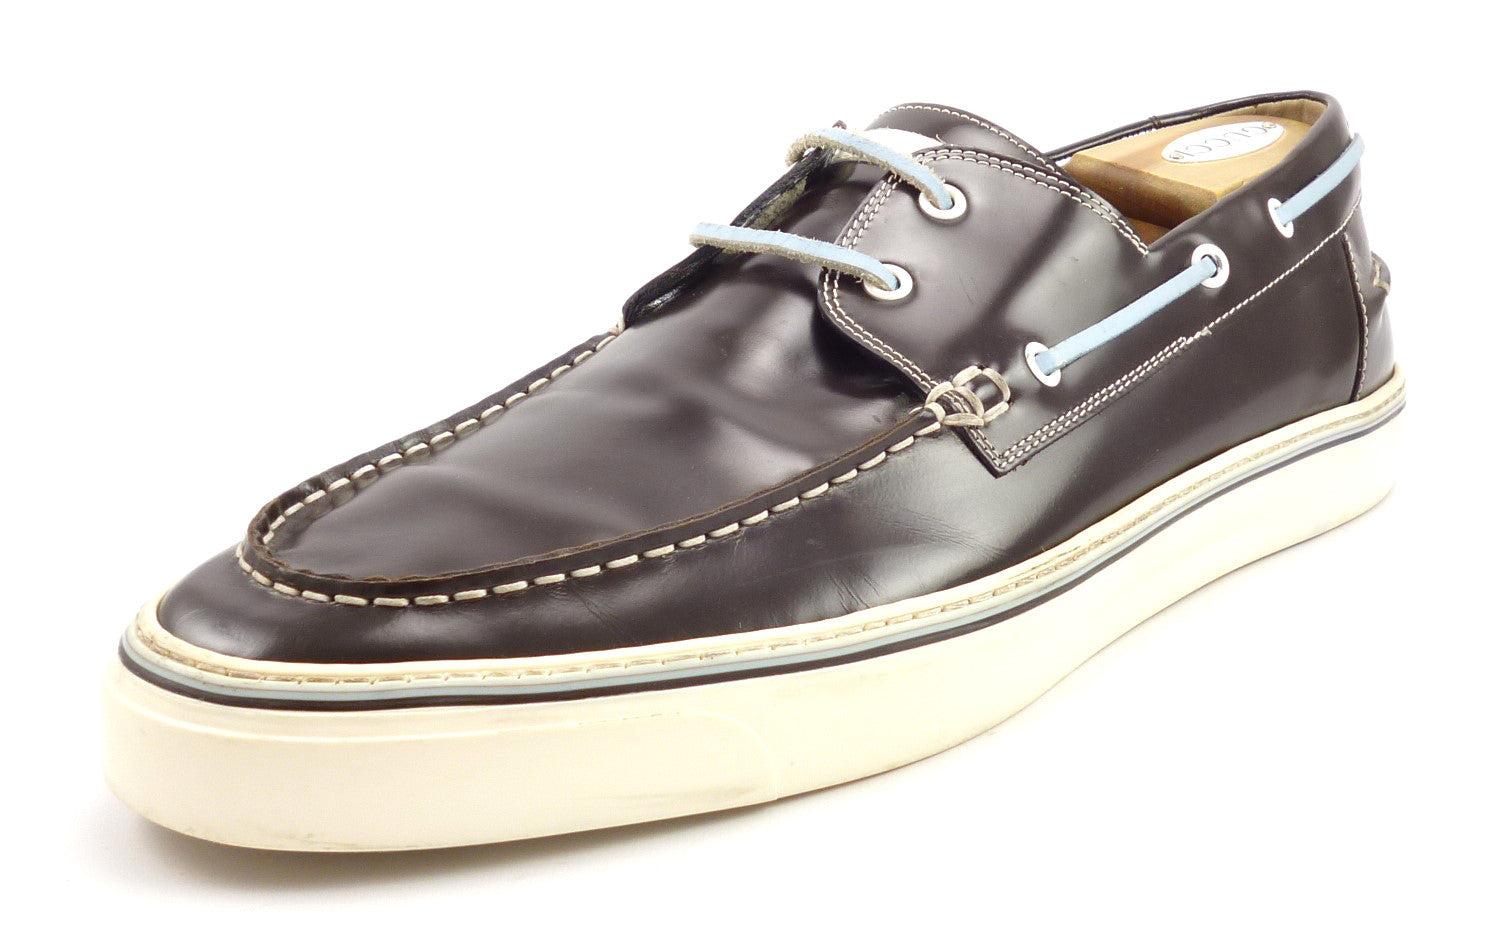 Gucci Mens Size 13 Leather Boat Deck Shoes Brown – Distinctive ...